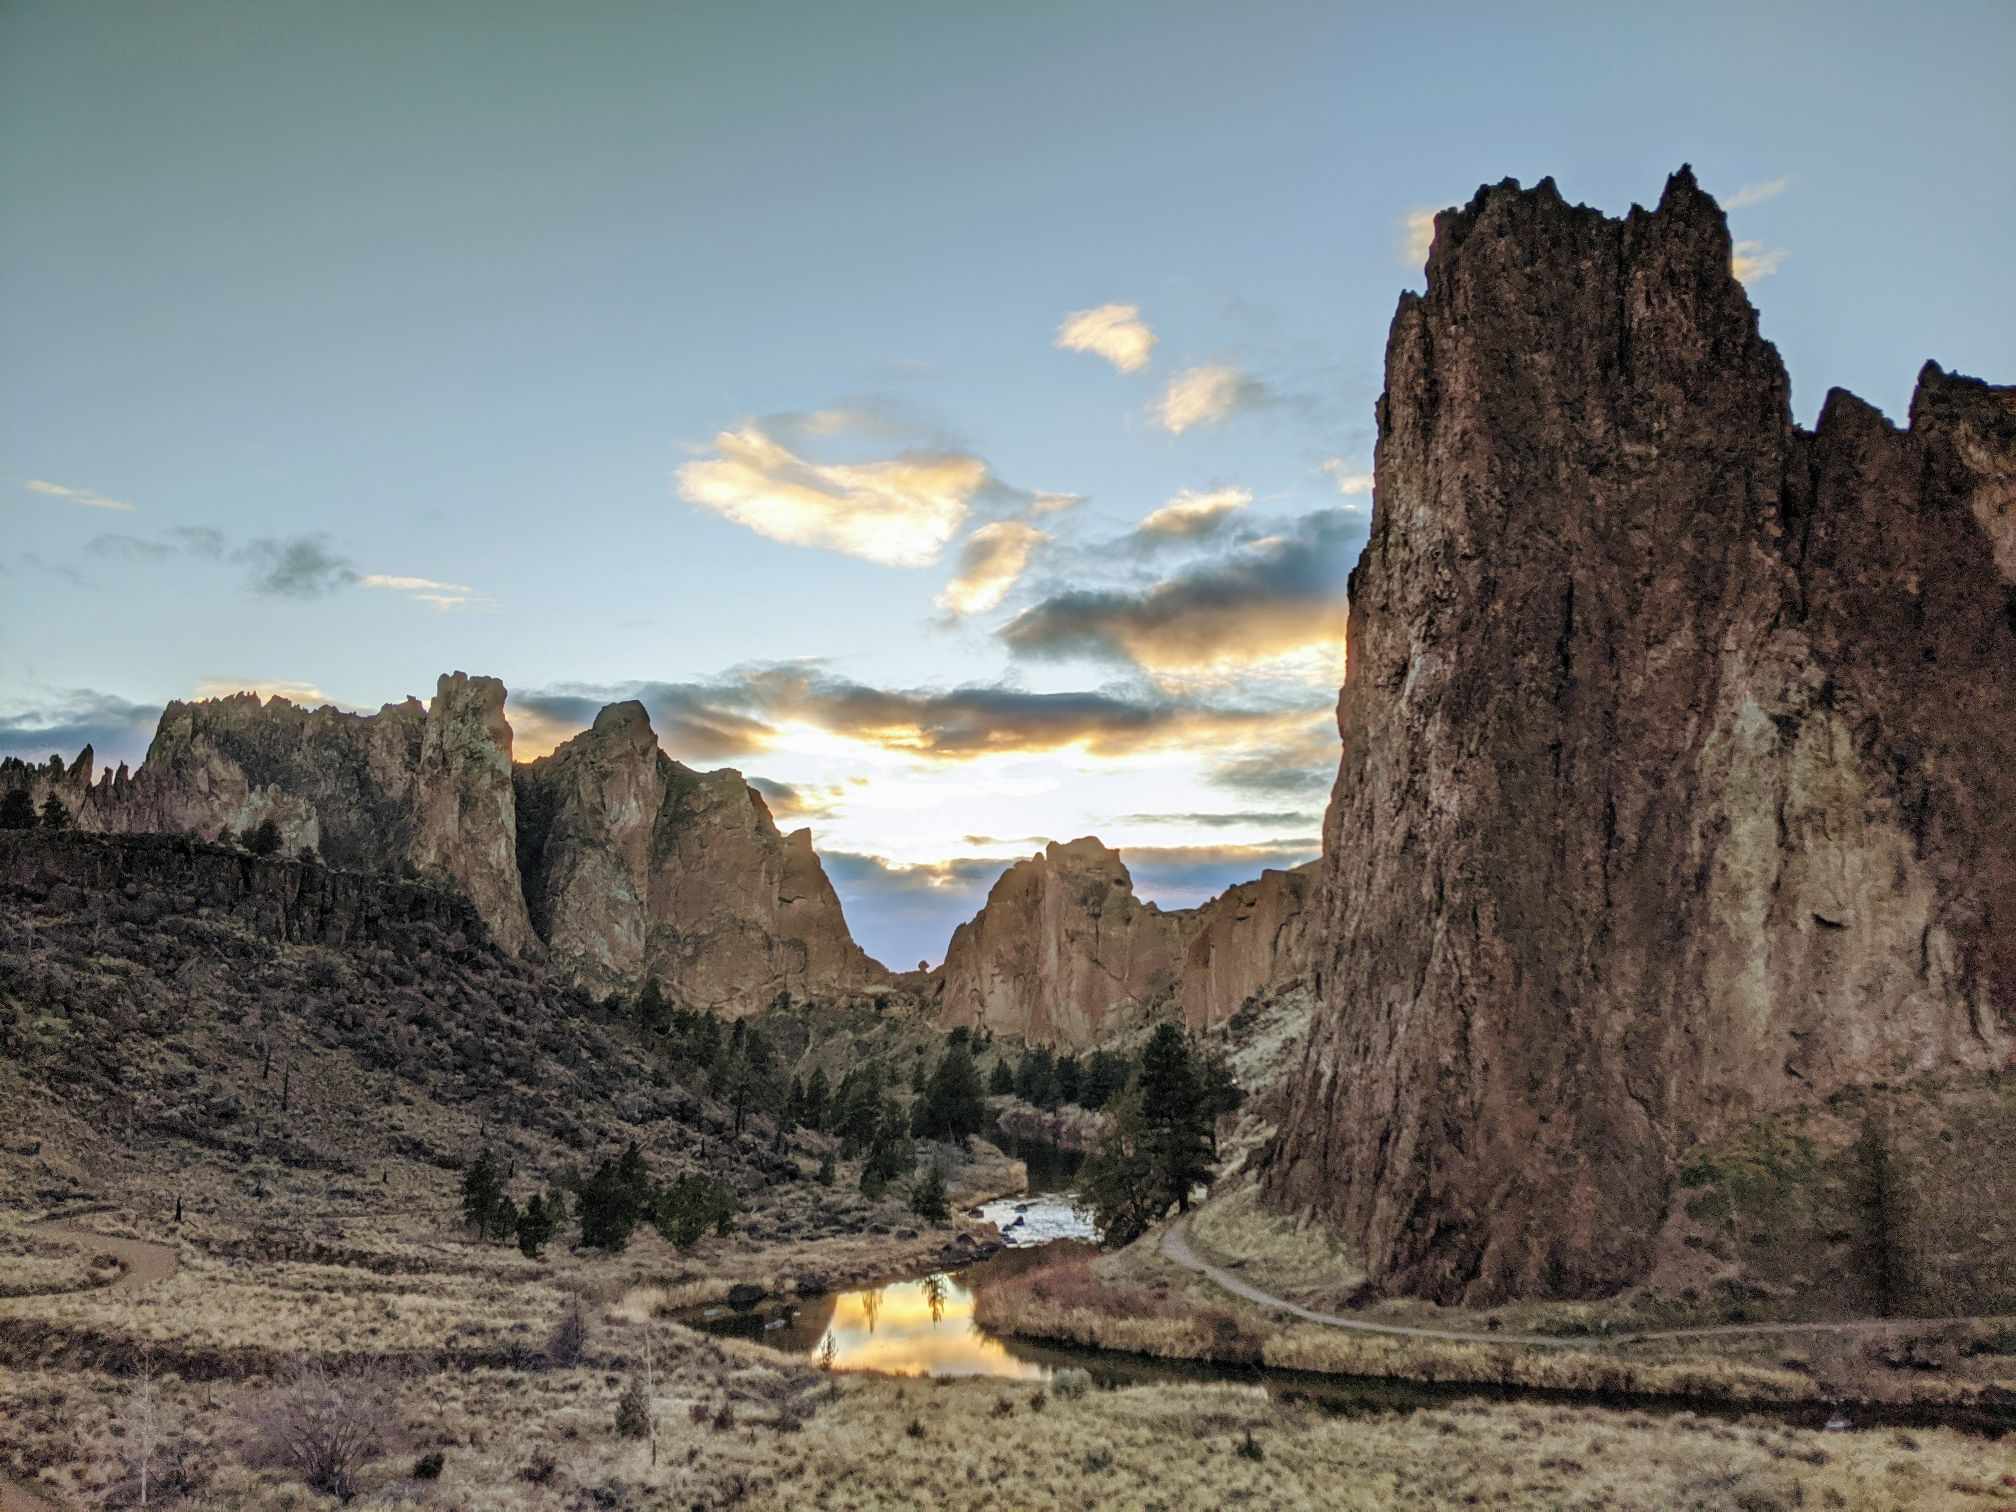 [Trip Report] Smith Rock - March 2020